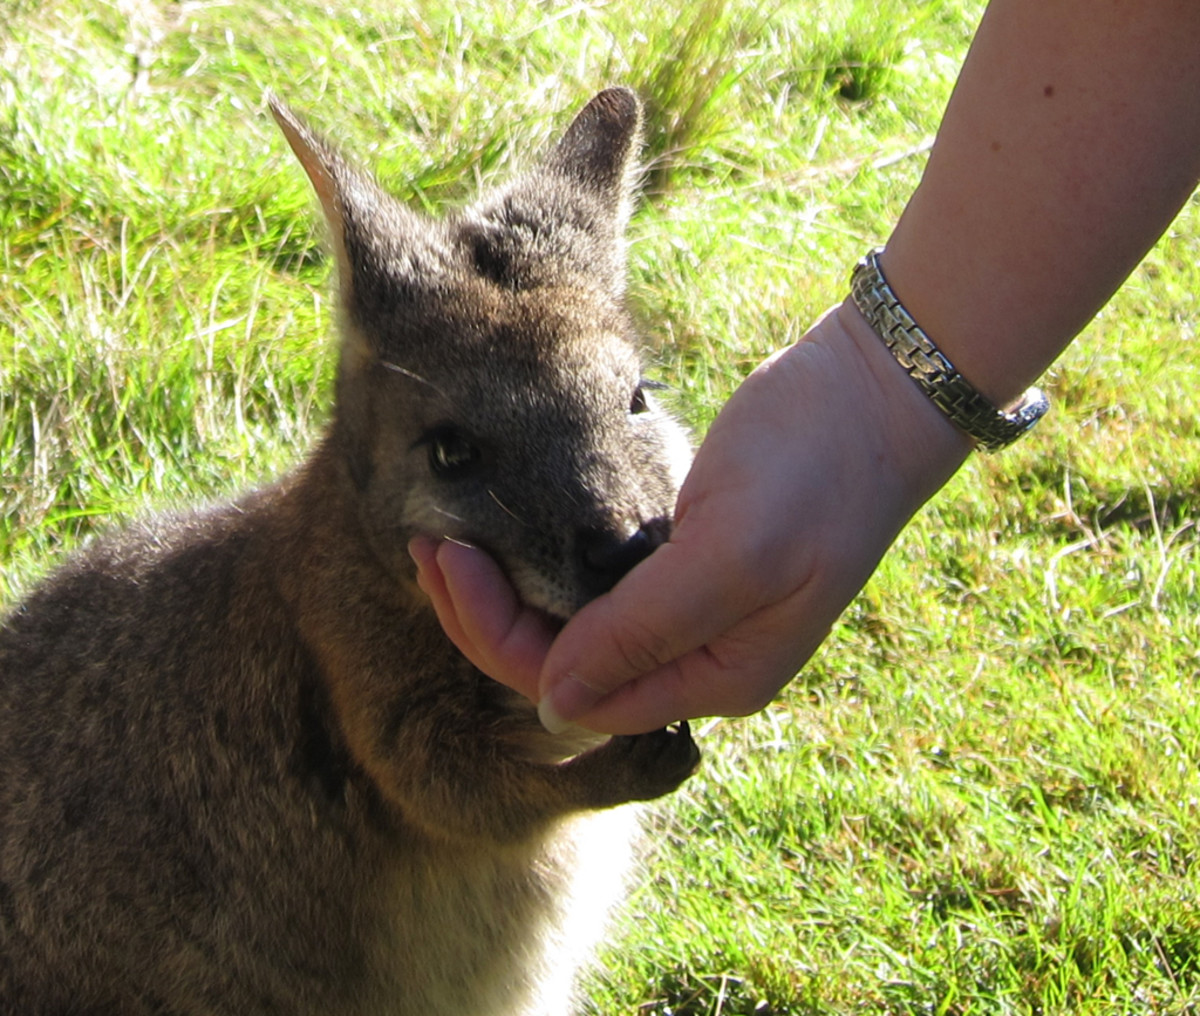 A wallaby being fed